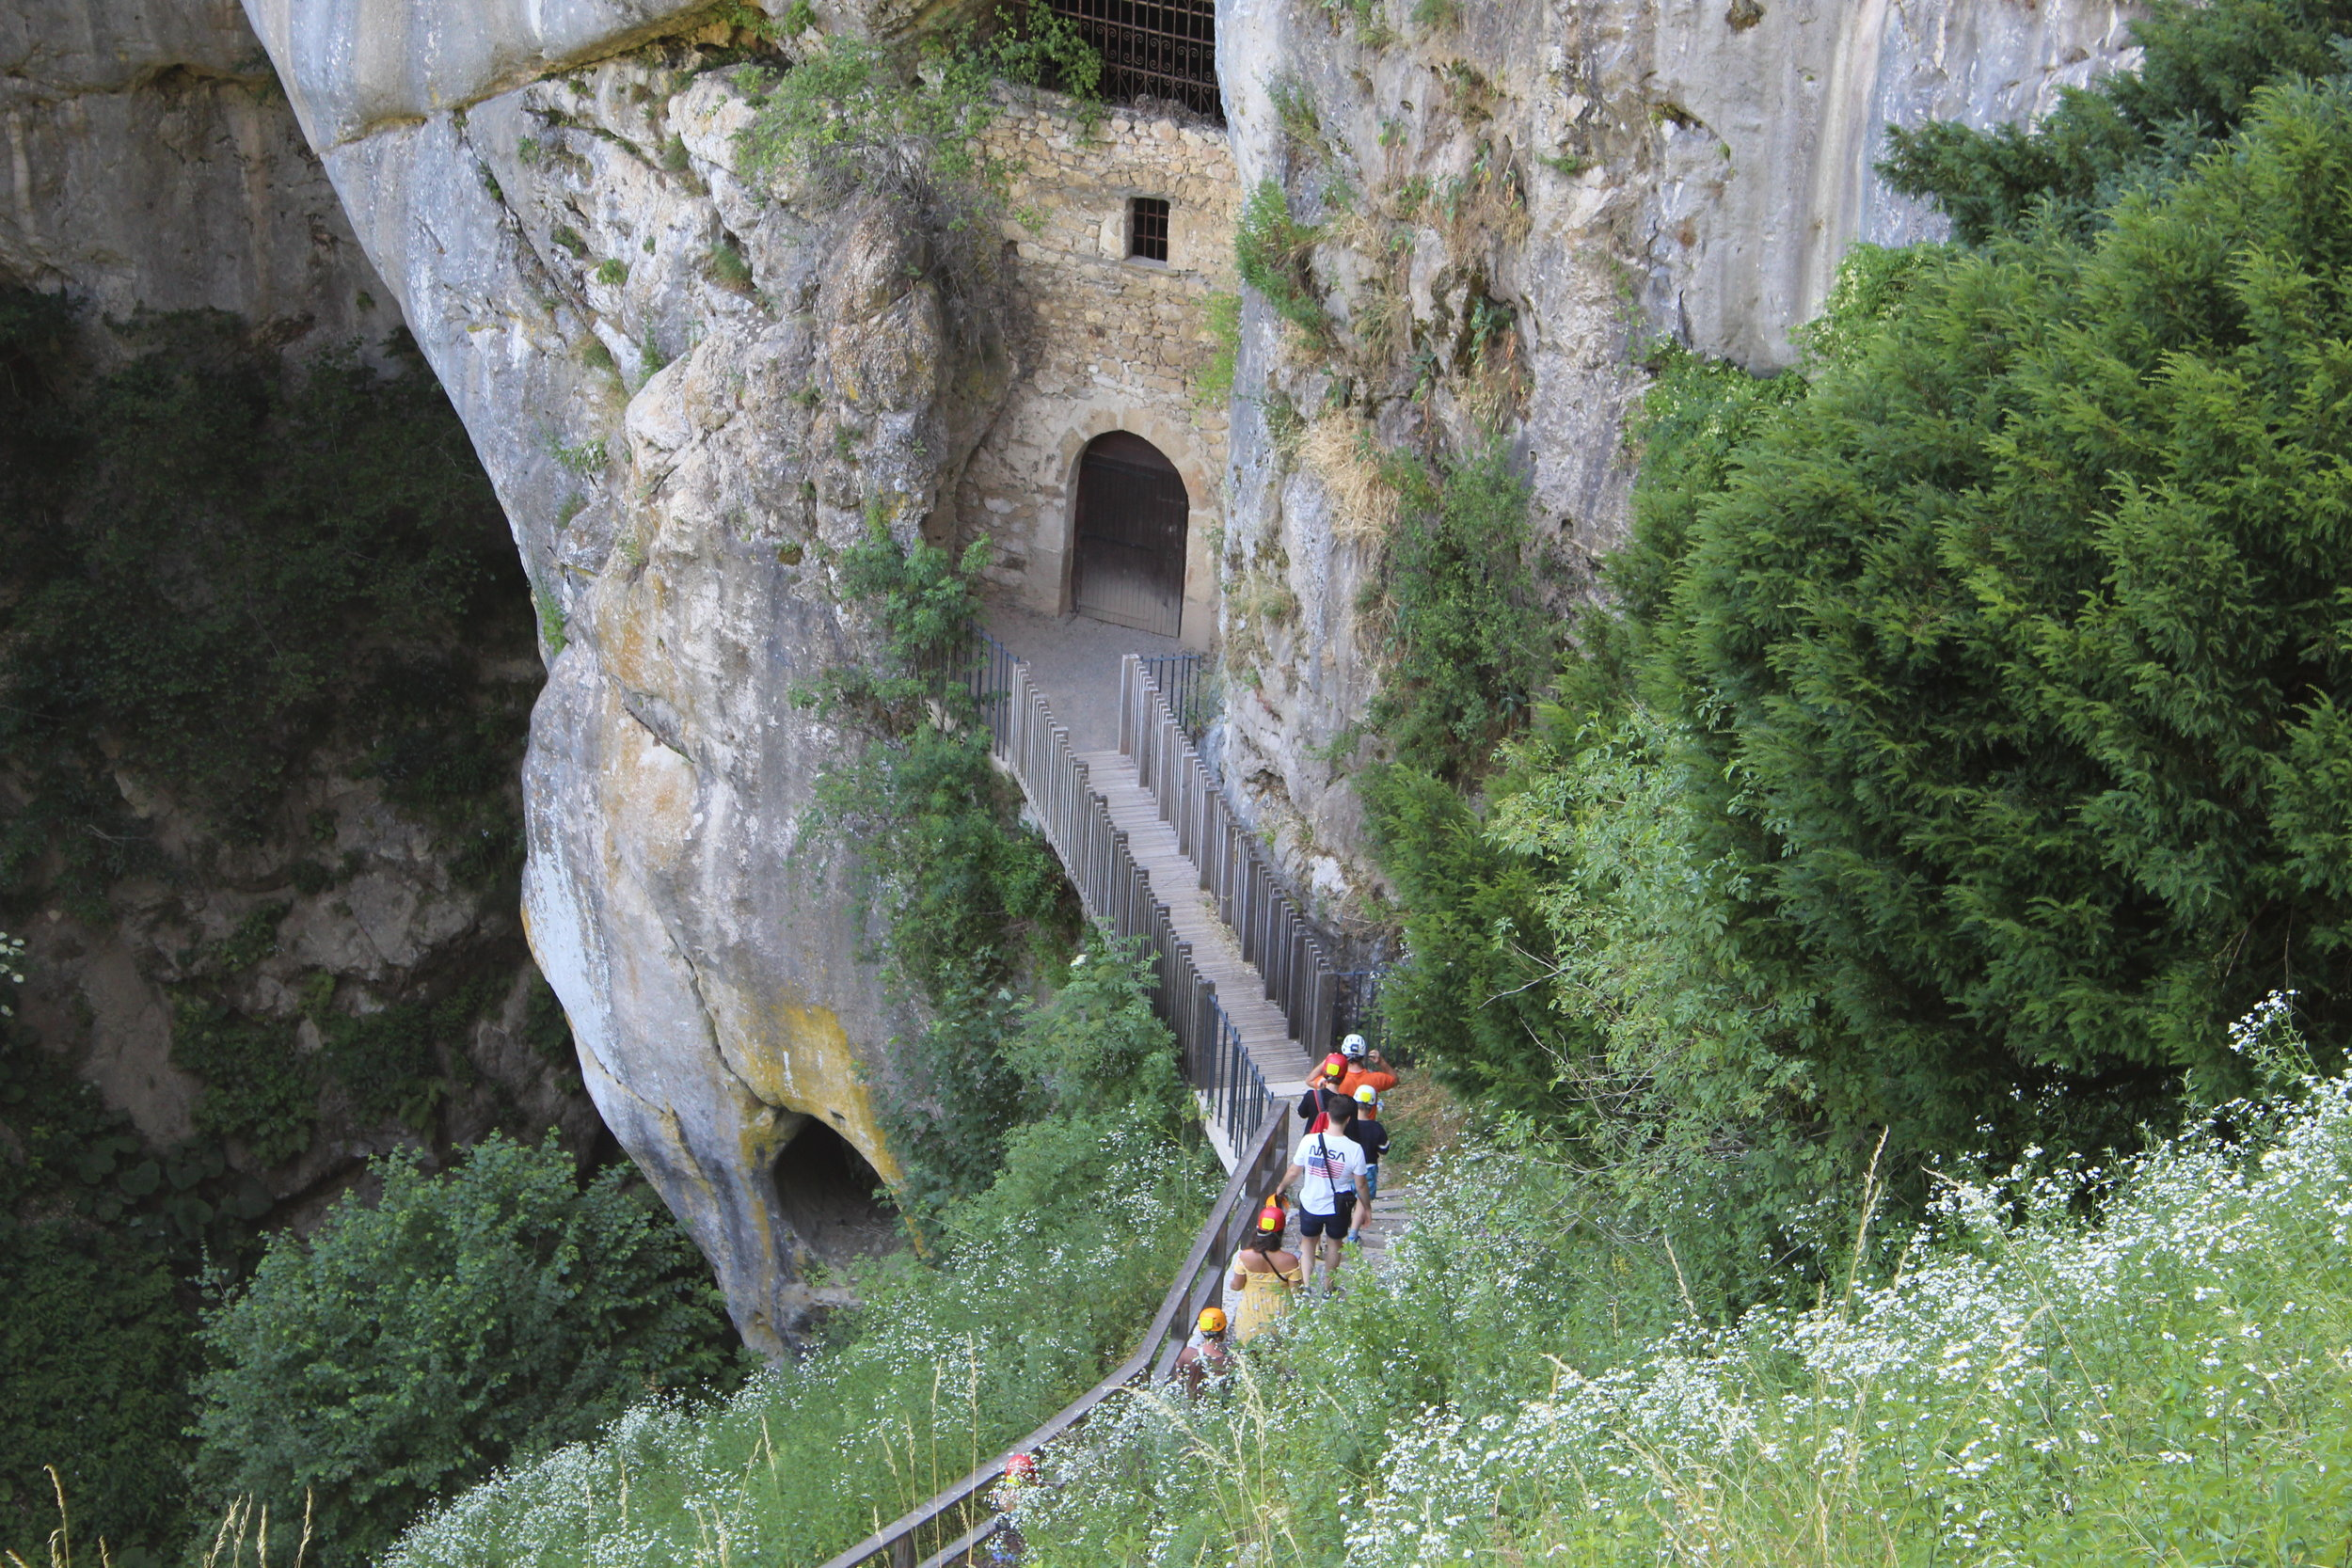 The cave system below the castle